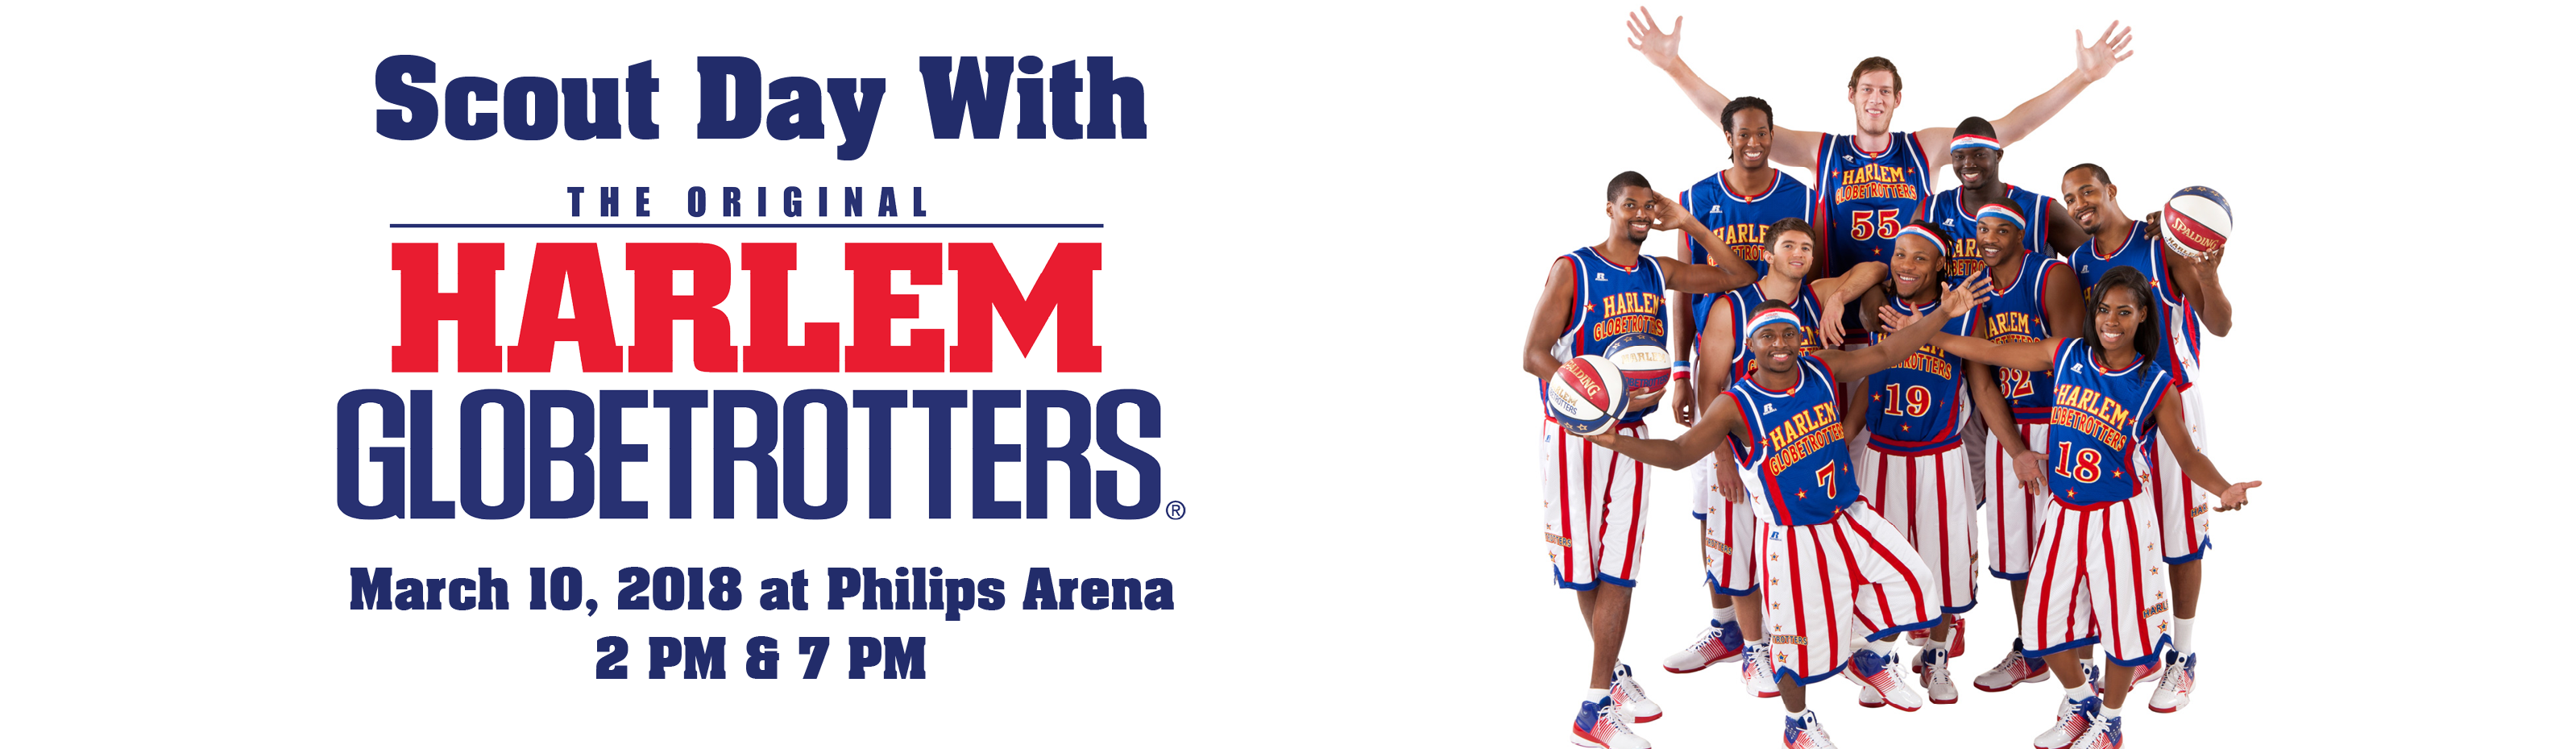 Scout Day with the Harlem Globetrotters